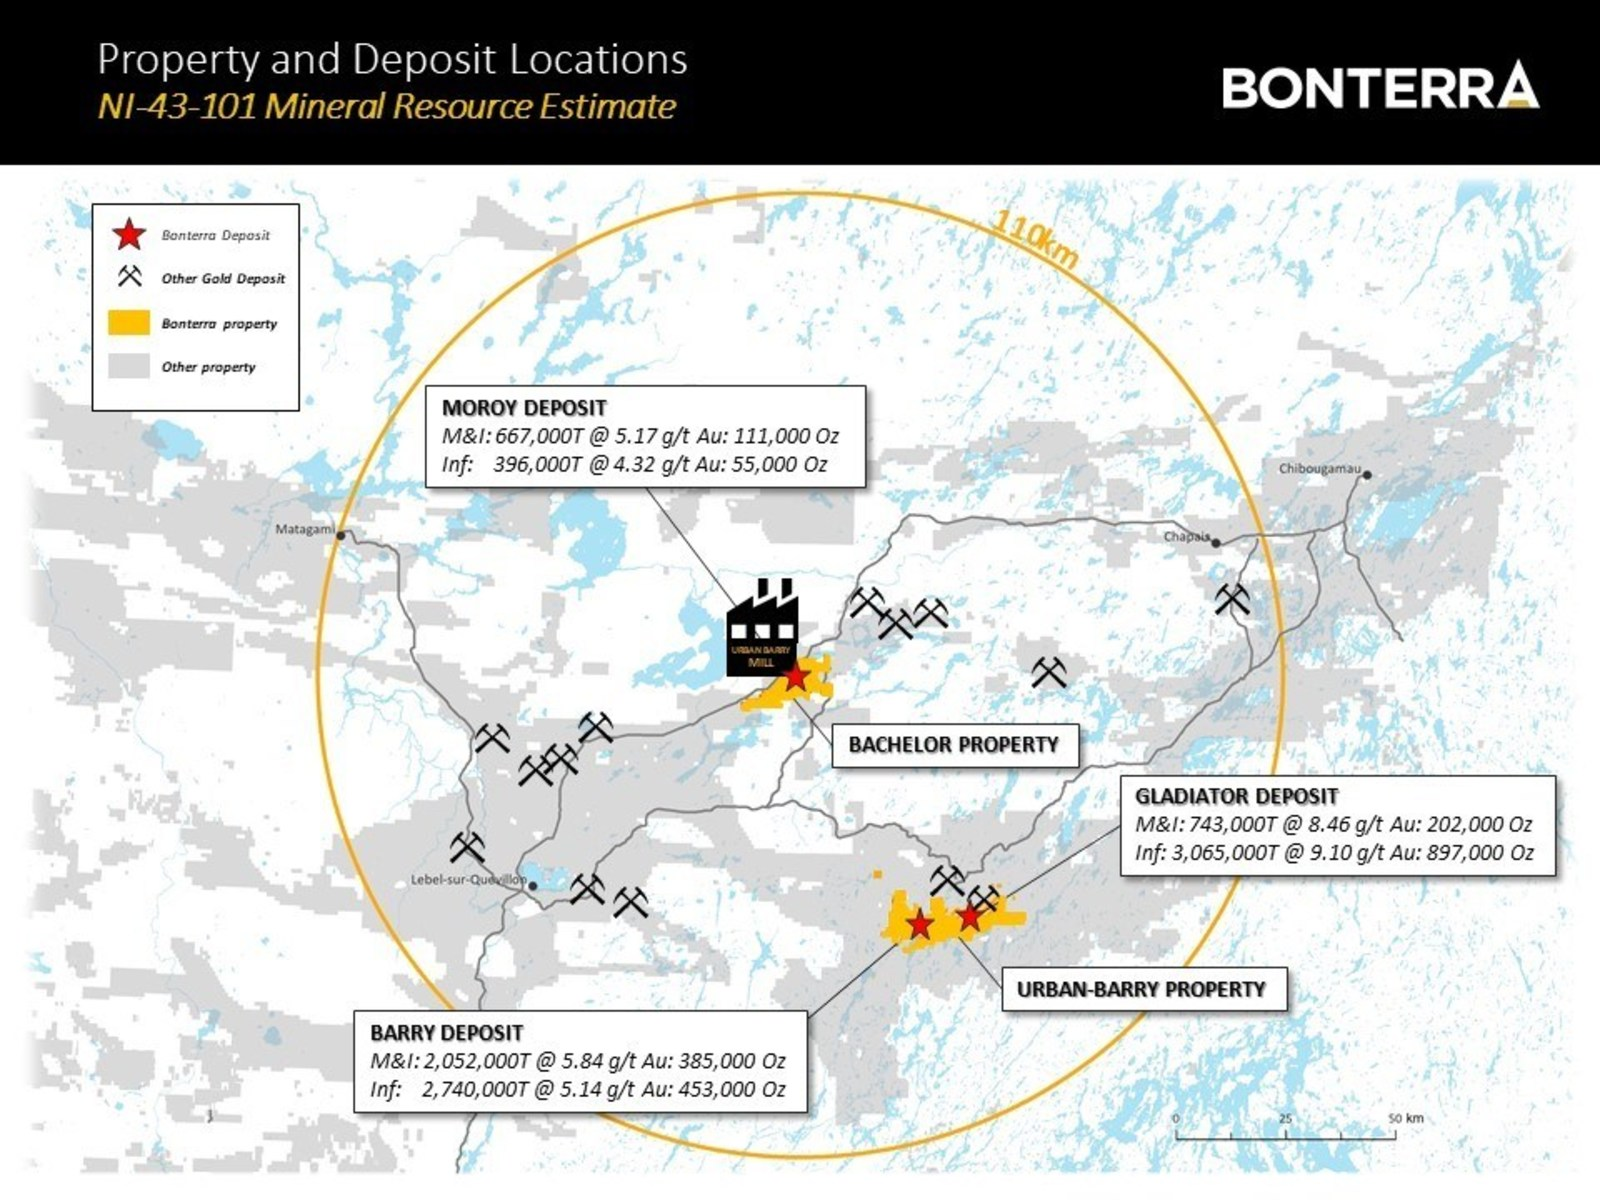 Property and Deposit Locations - NI 43 101 Mineral Resource Estimate